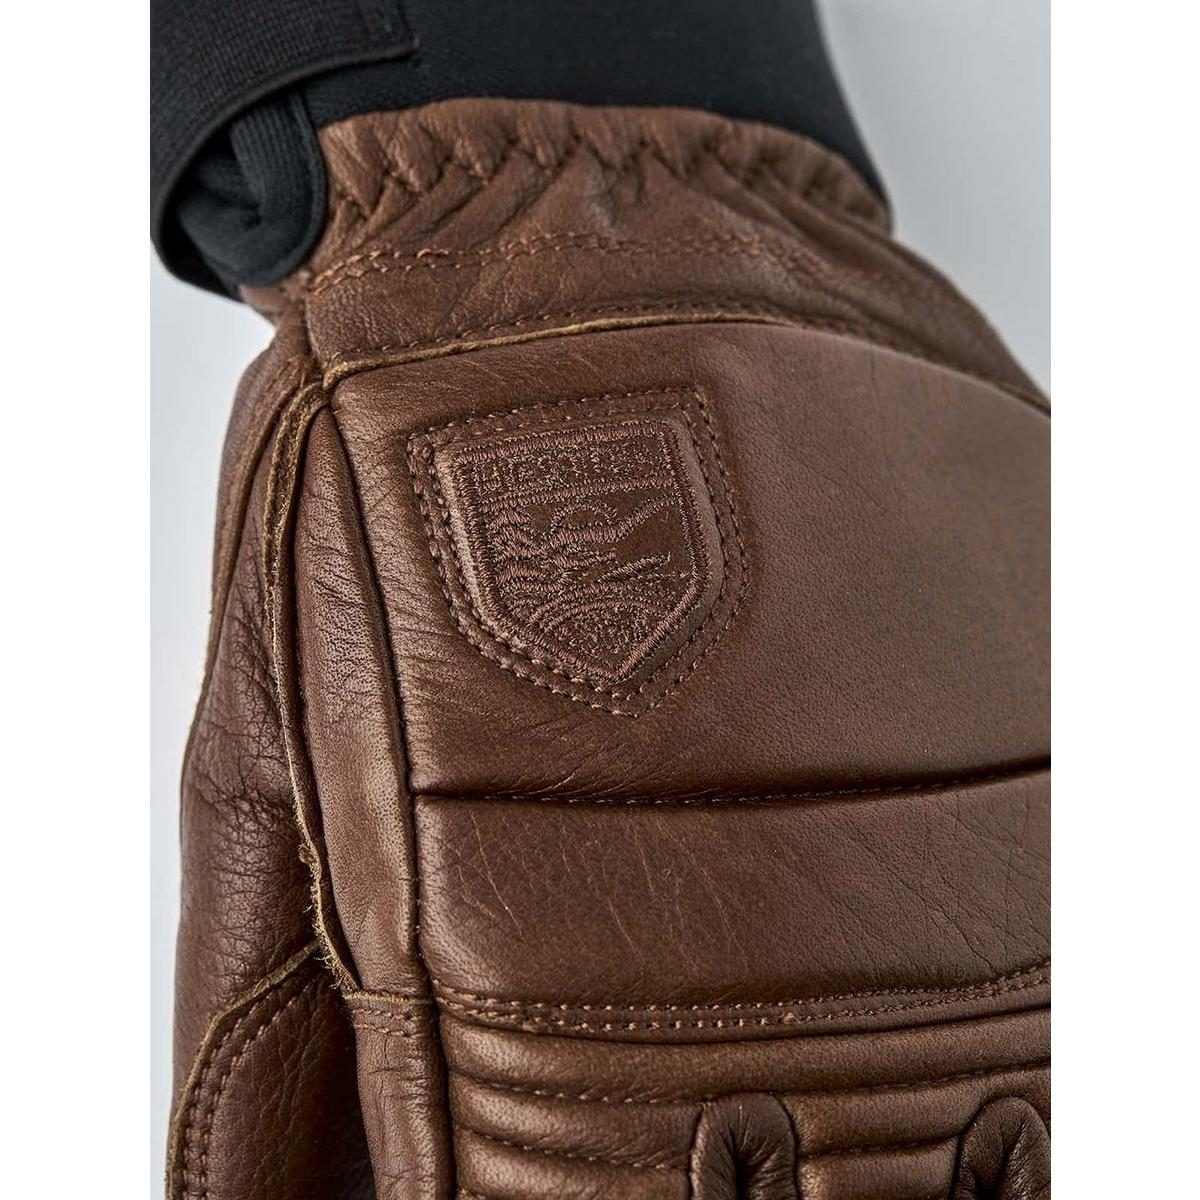 Hestra Men's Leather Fall Line Glove - Brown